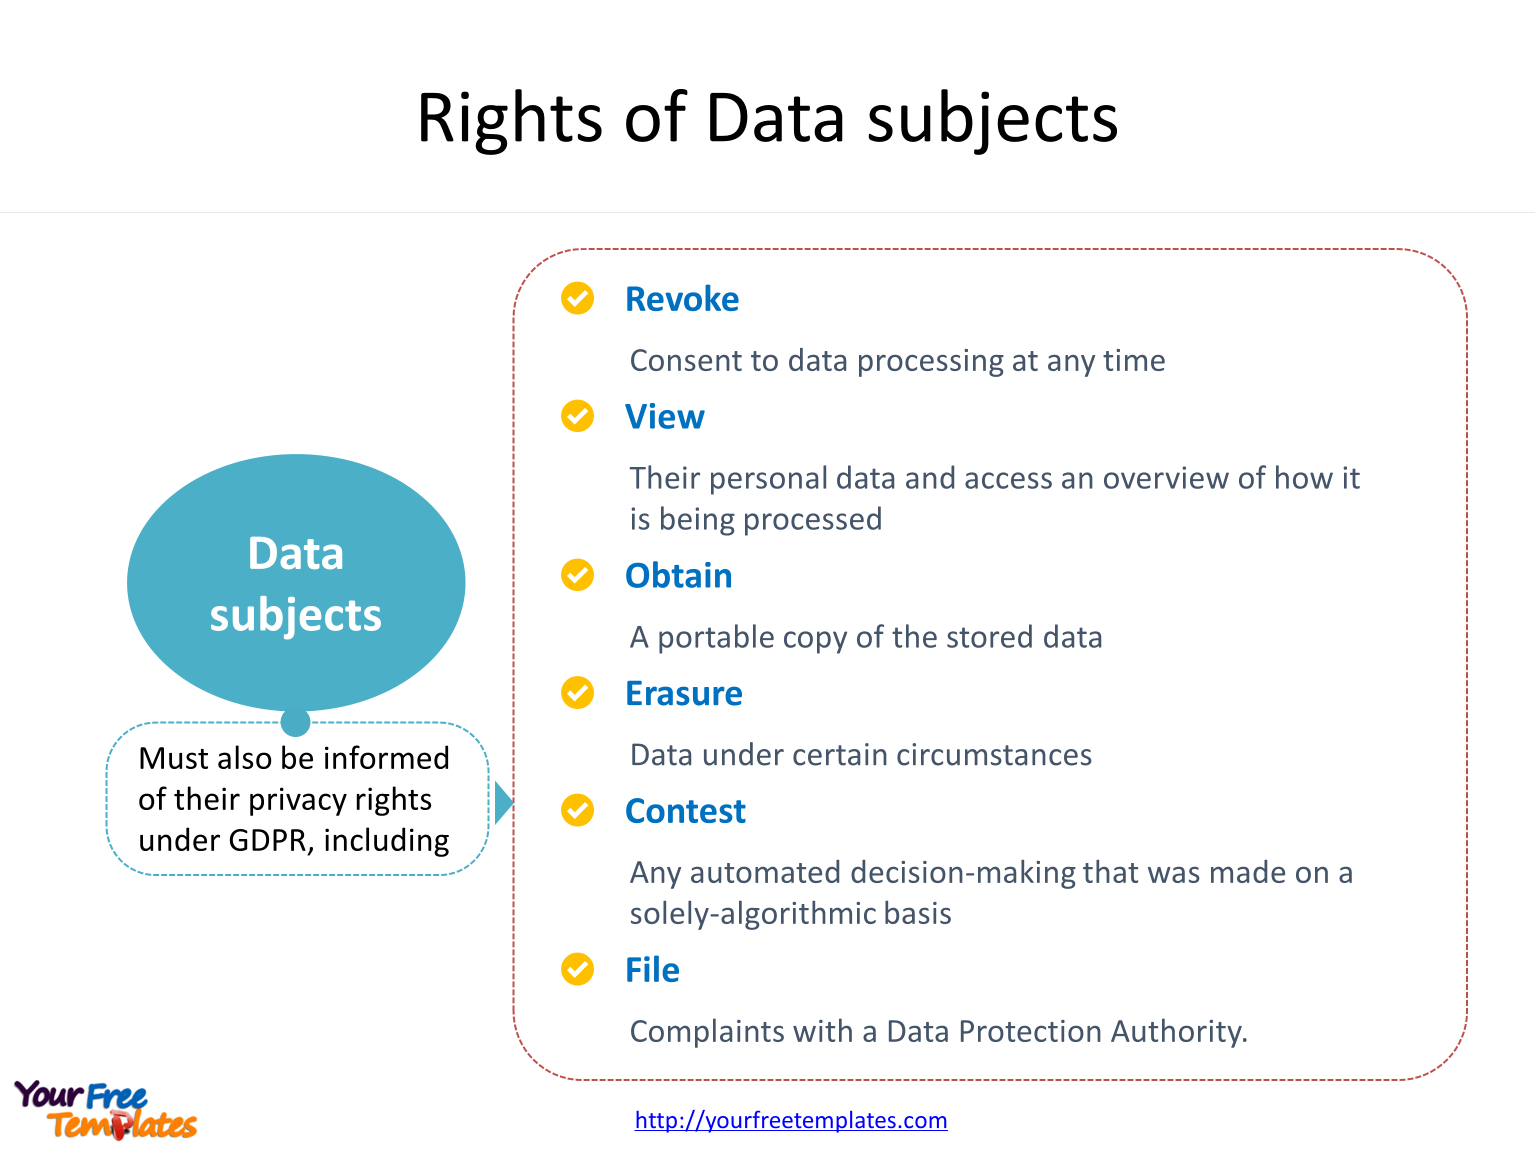 General Data Protection Regulation with Rights of Data subjects in the GDPR compliance PowerPoint templates